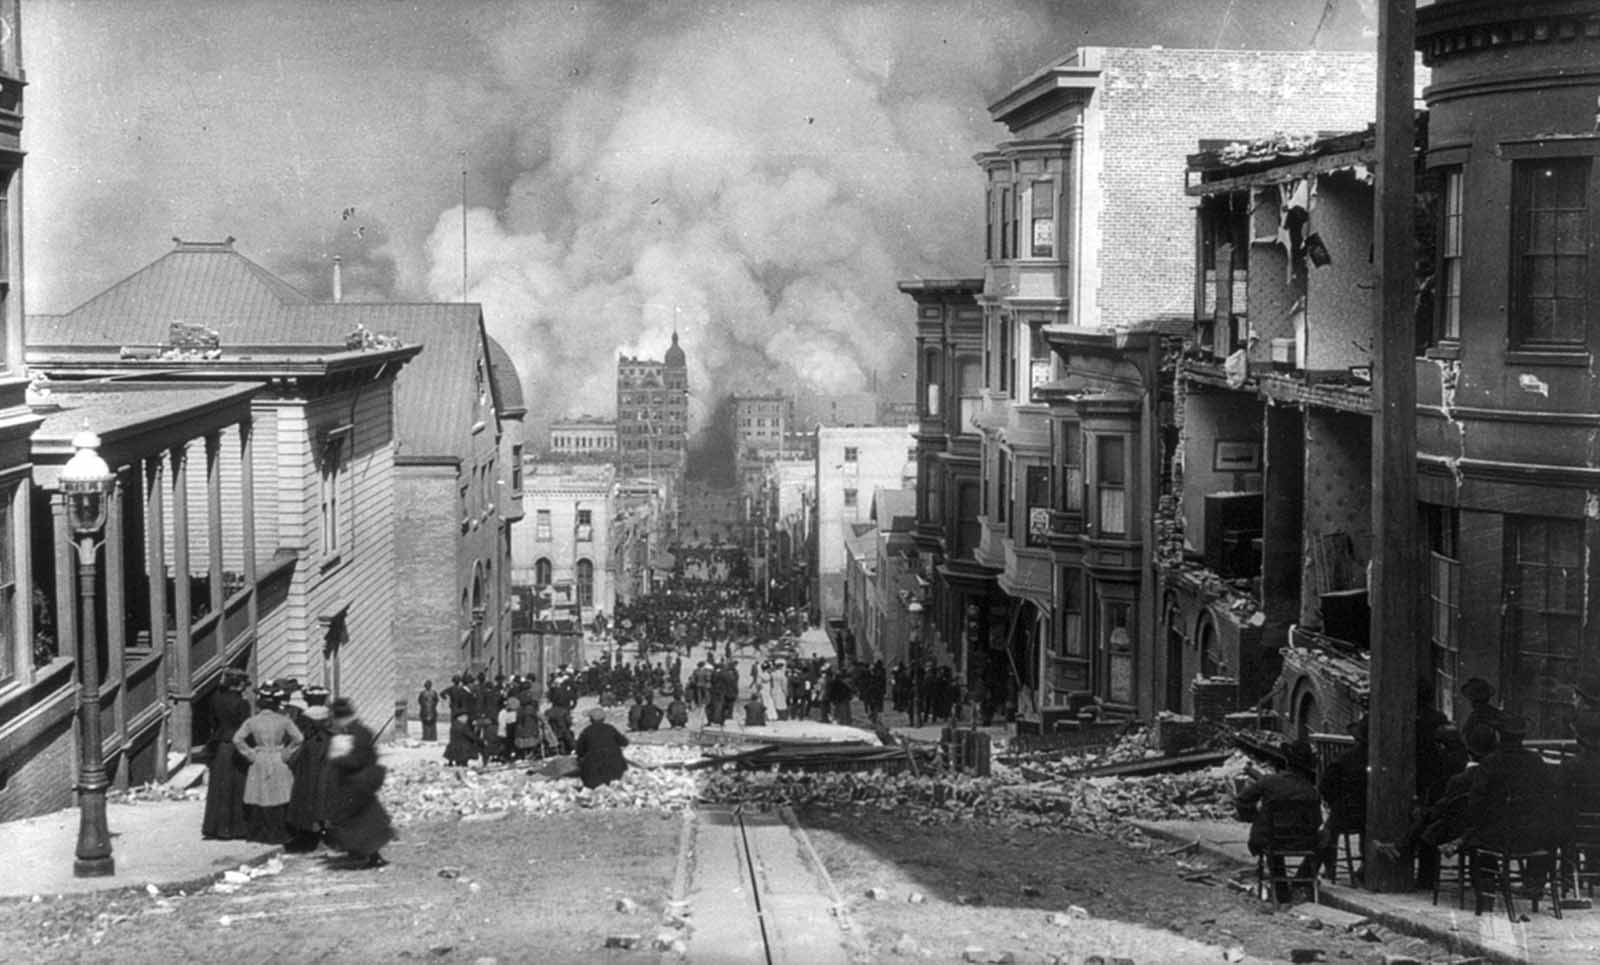 San Francisco residents, some seated in chairs, sit among the earthquake damage, watching out-of-control fires in the distance.